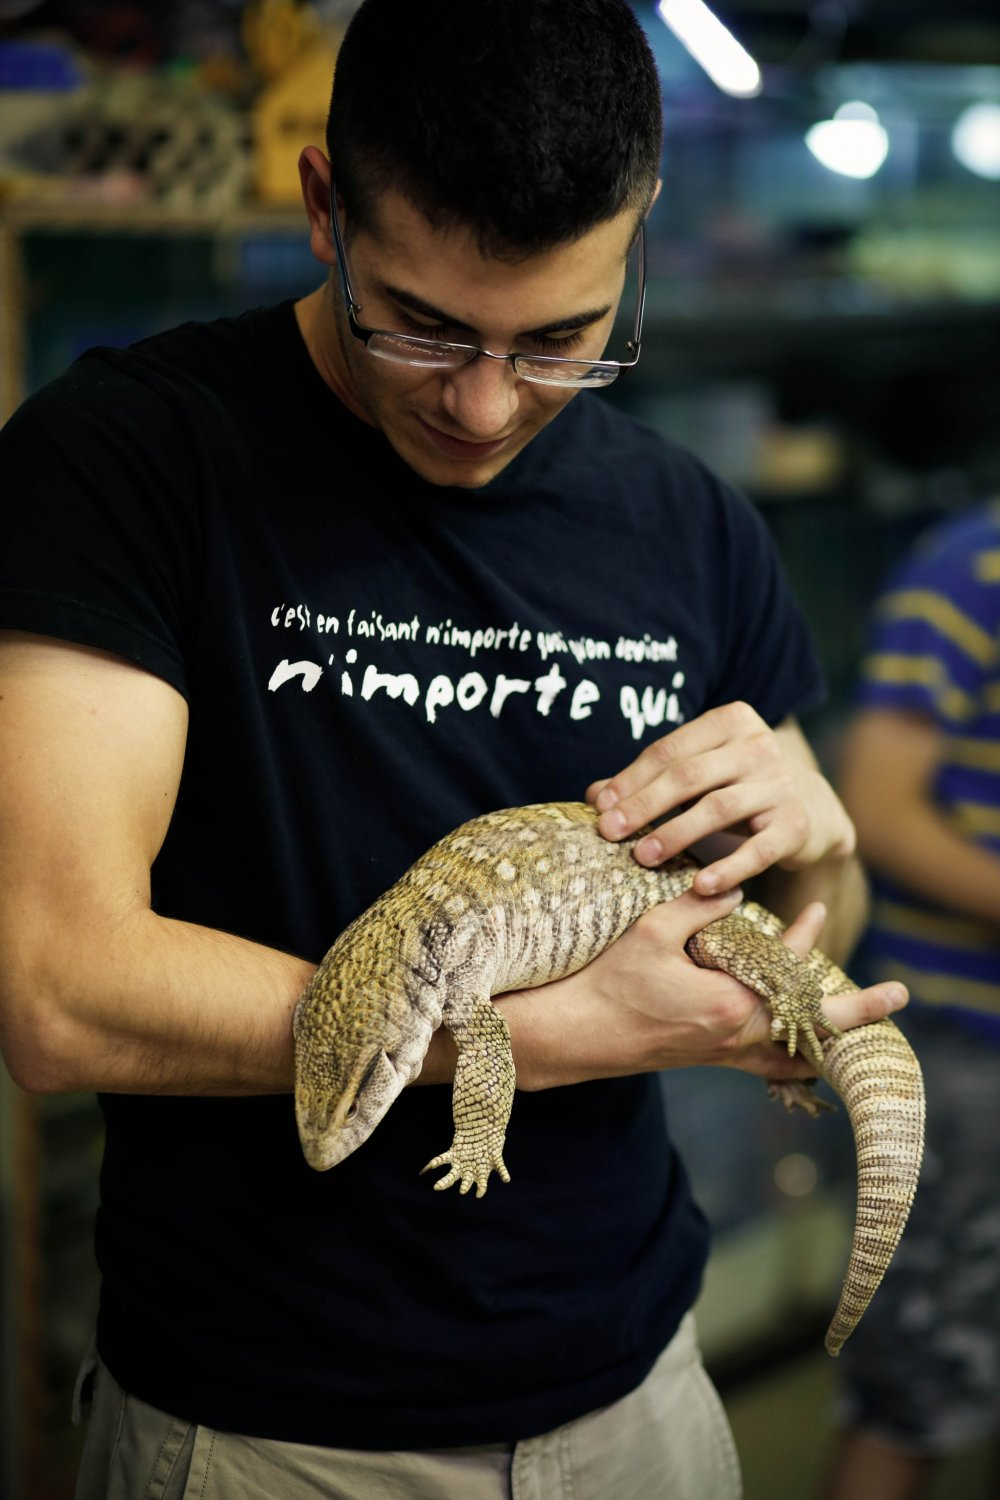 Yes, you can take this monitor lizard in your hands and it would sit there quietly without even moving.